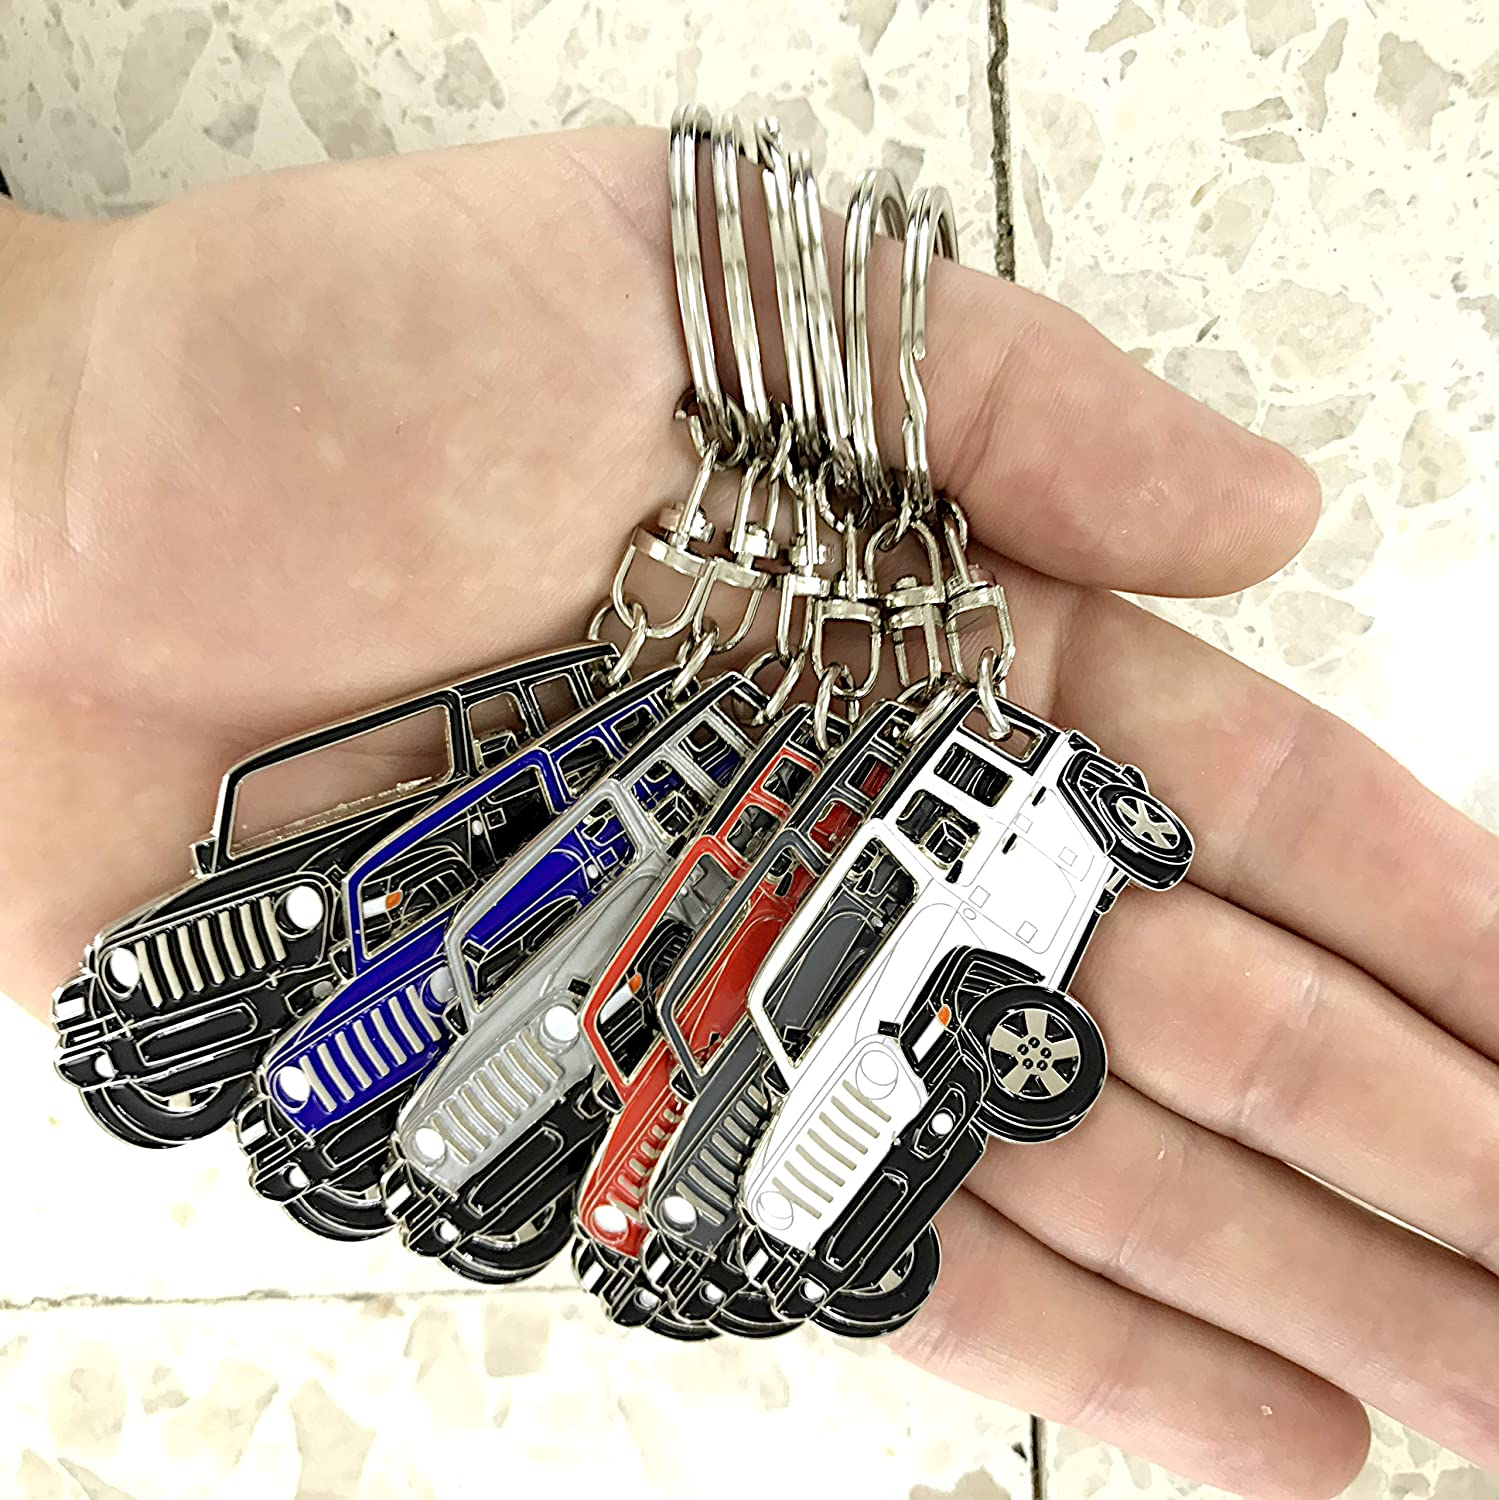 enamel Wrangler unlimited 4 doors key chain for car accessories Chrome metal tag silver Replica.